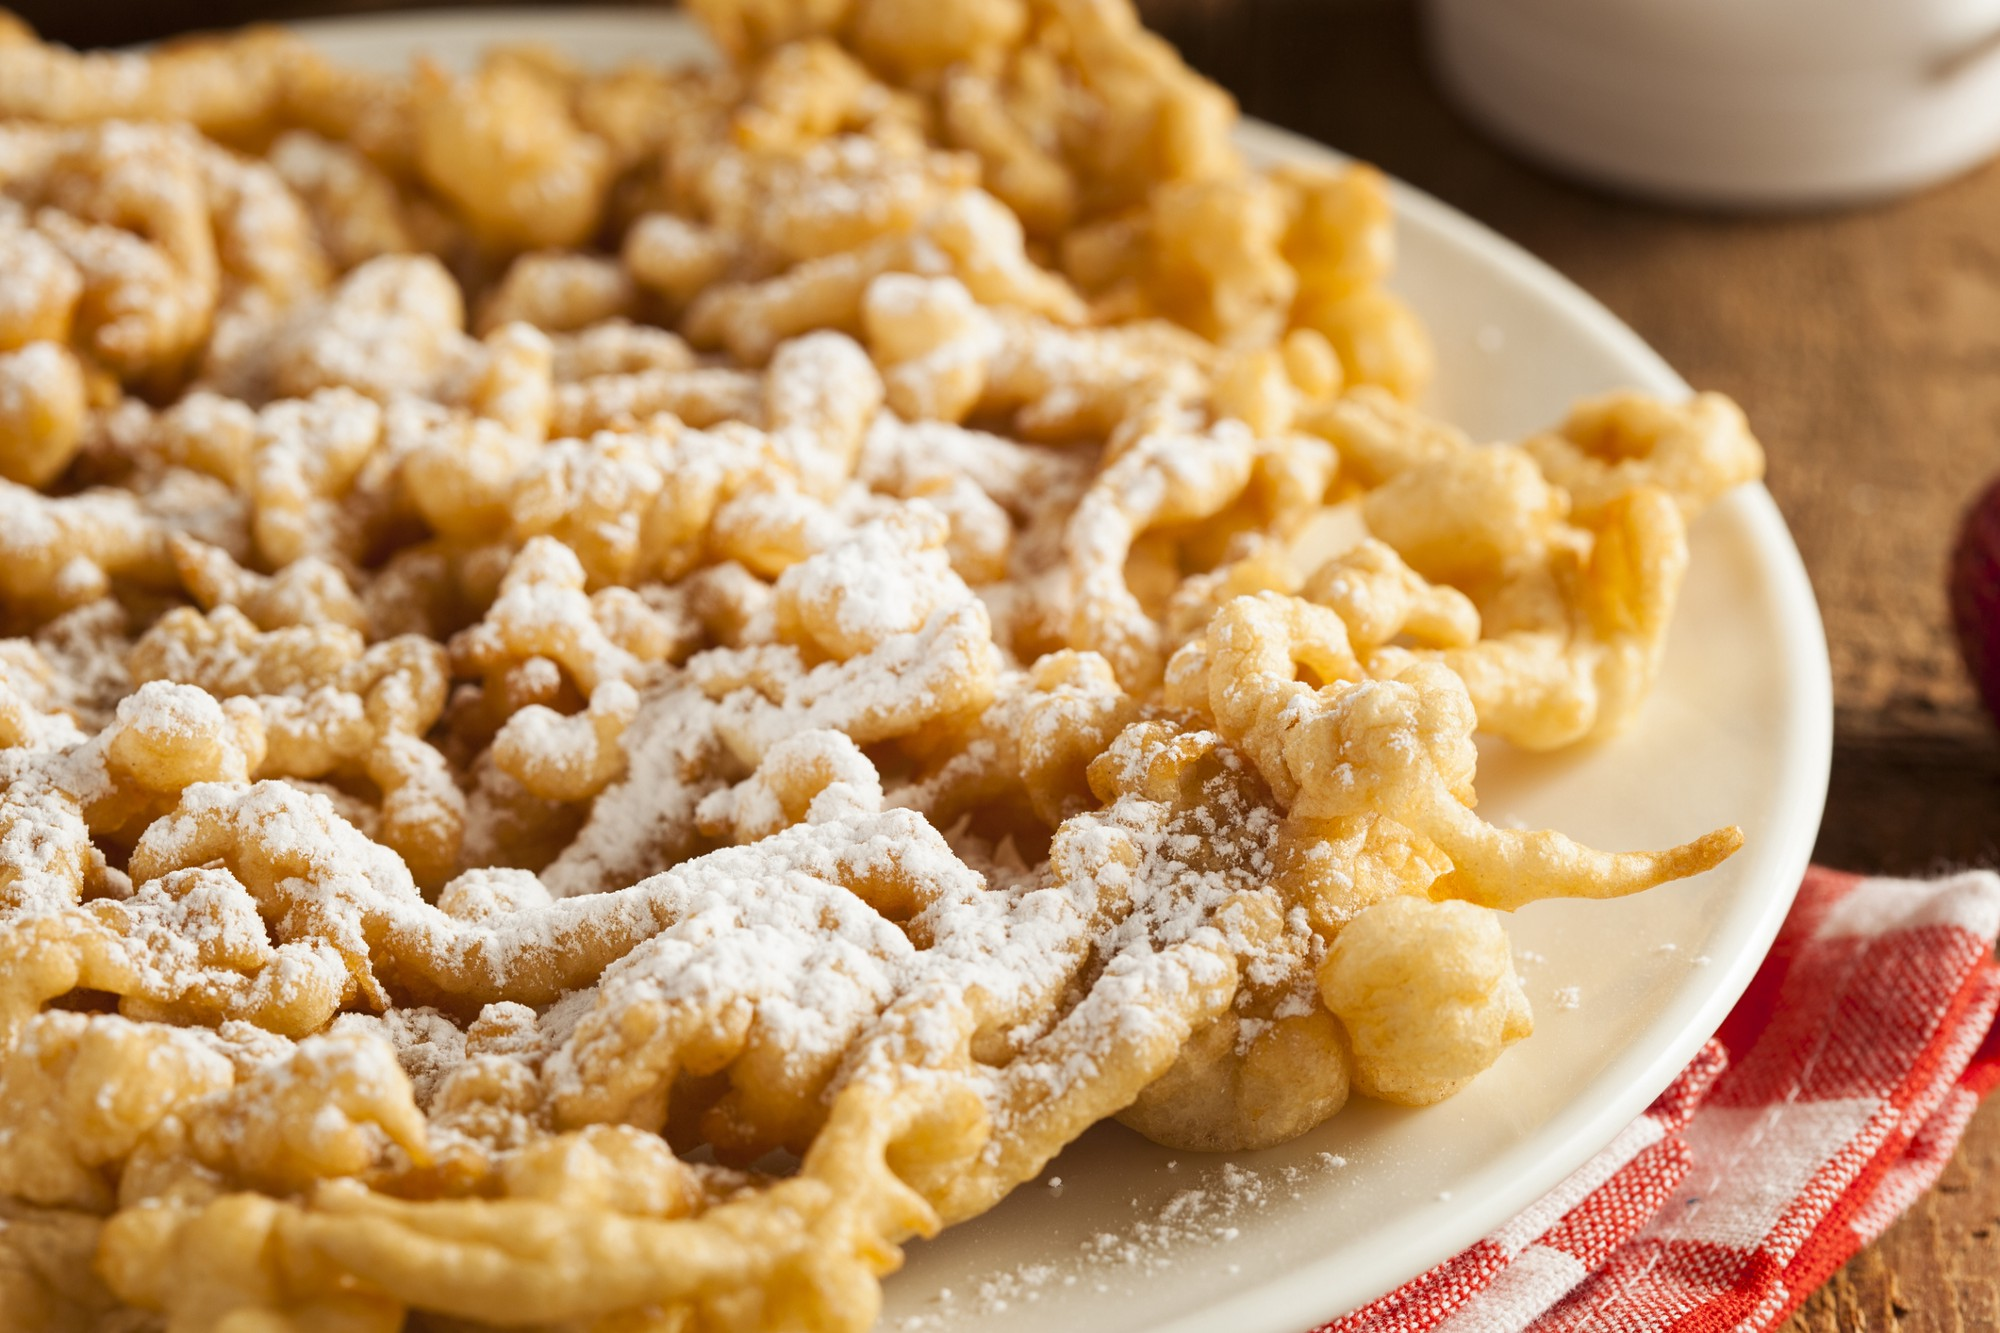 A plate of a powdered sugar-dusted funnel cake, on a red-and-white gingham cloth.